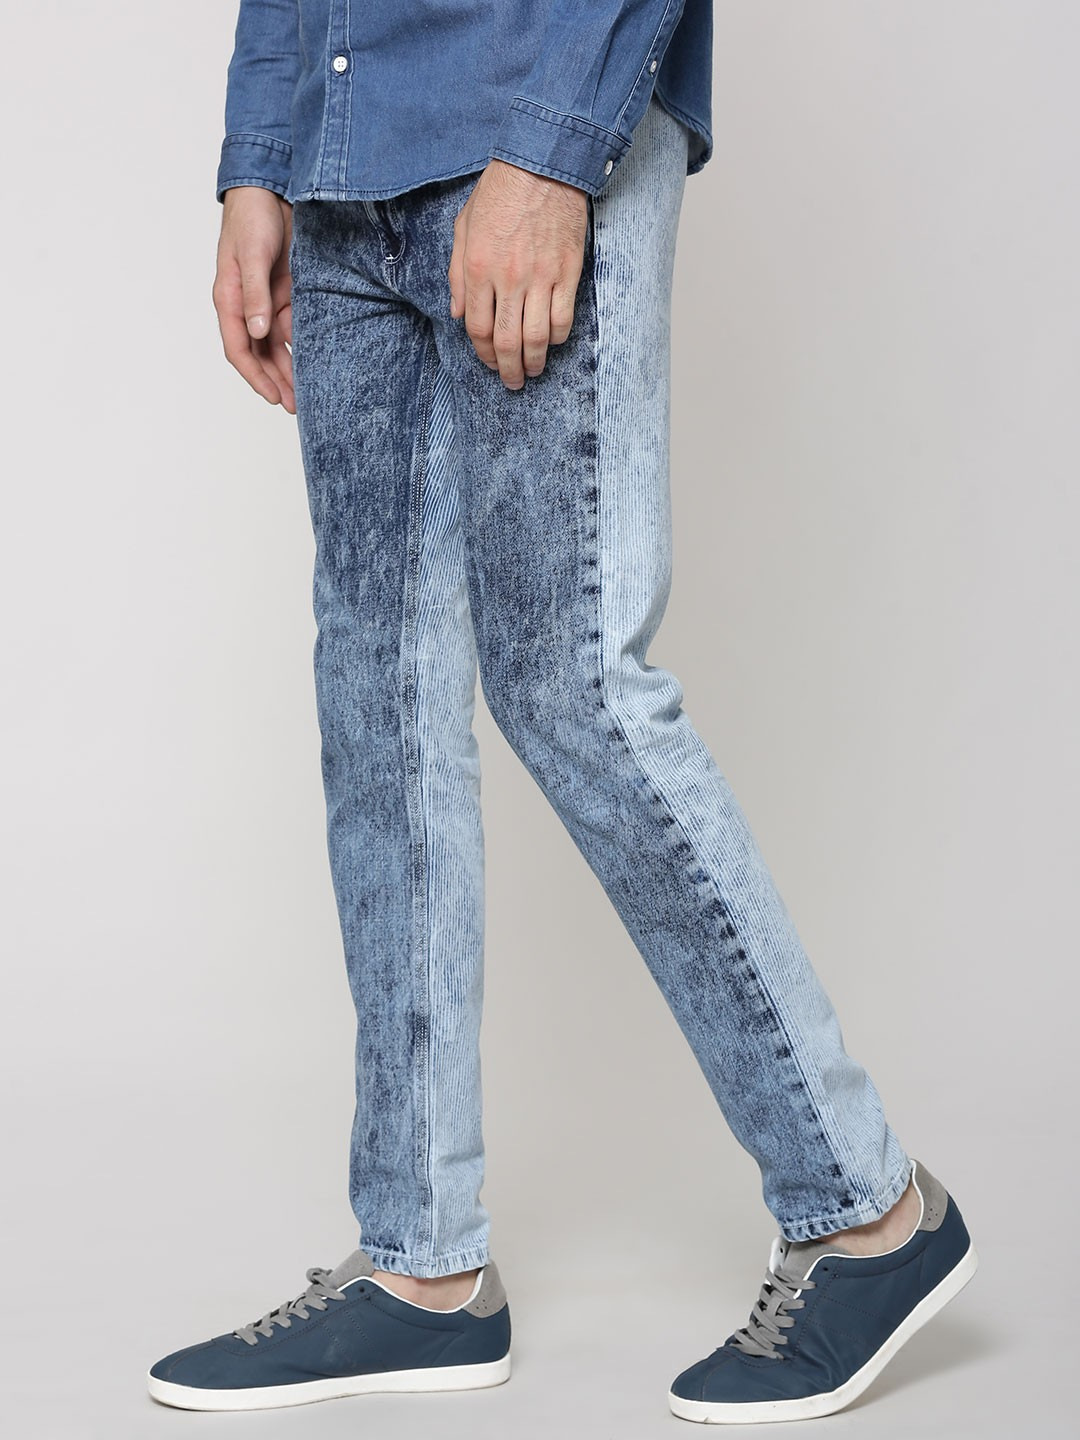 Buy BLUE SAINT Two-Tone Acid Wash Slim Jeans For Men - Men's Blue ...